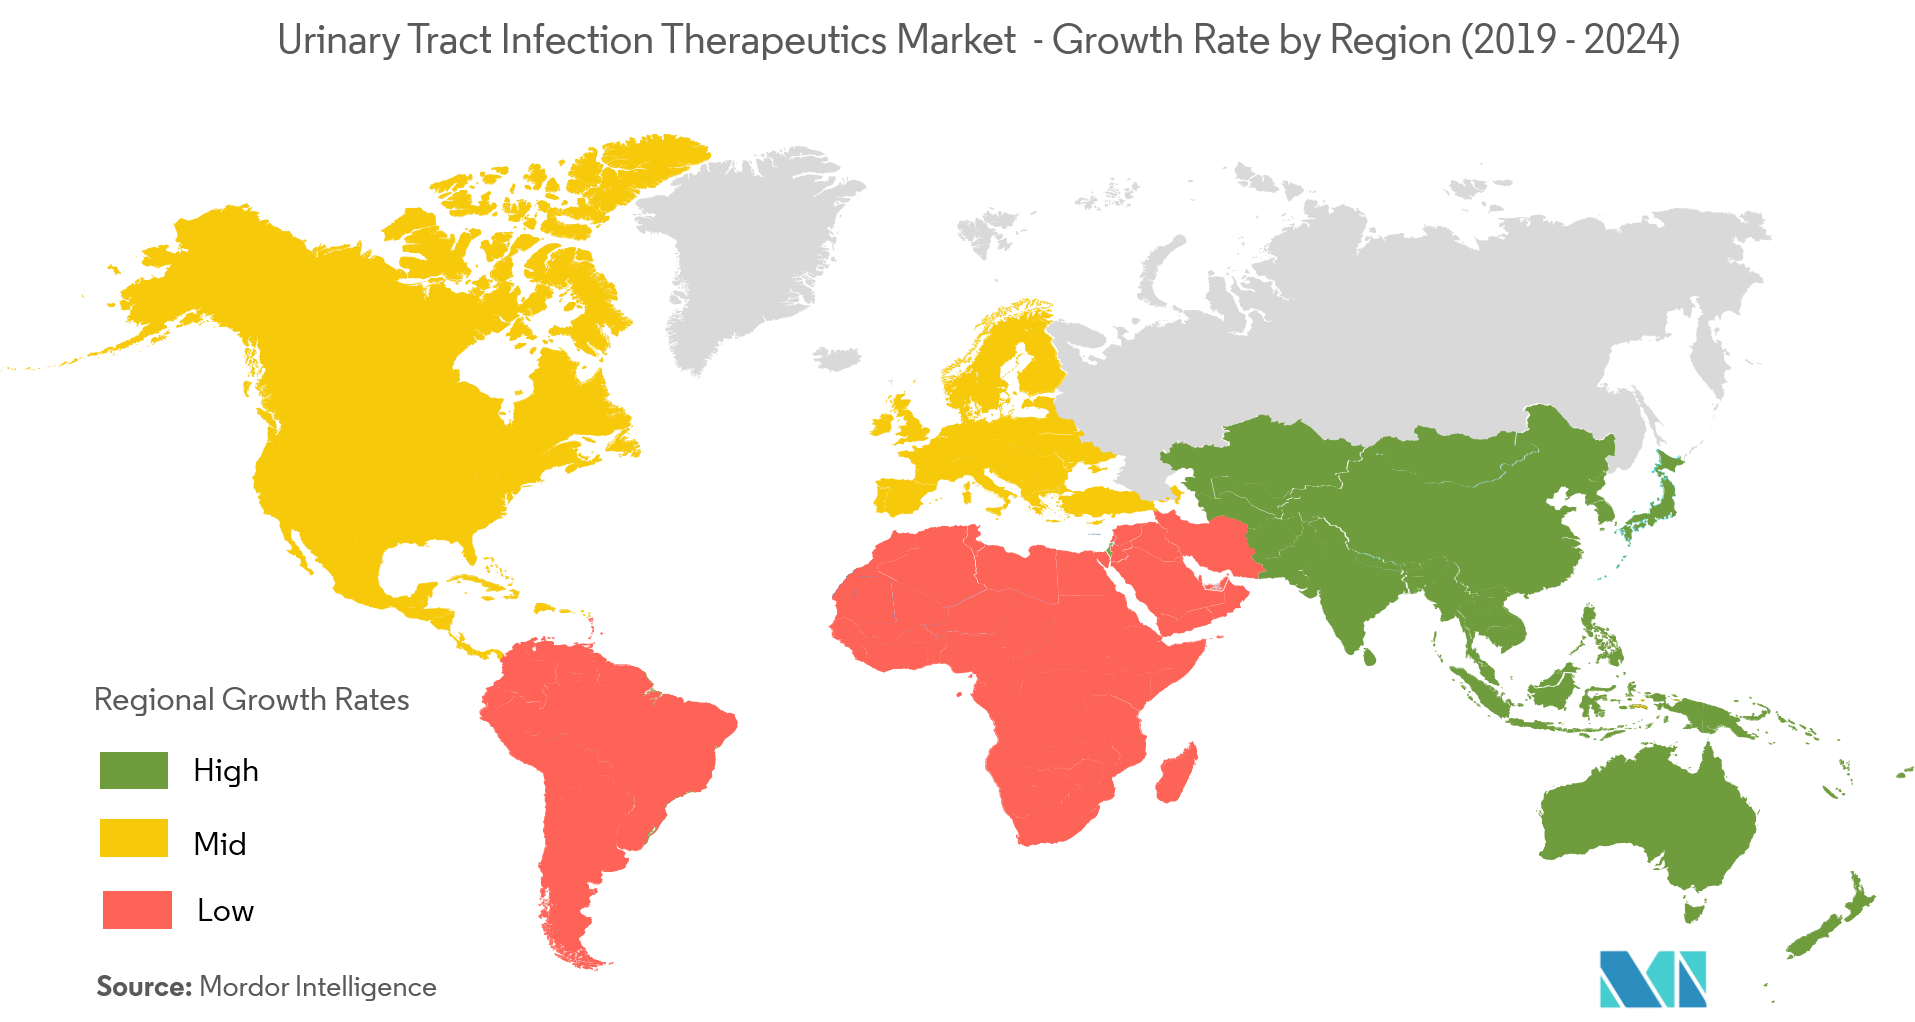 Urinary Tract Infection Therapeutics Market_Image 3